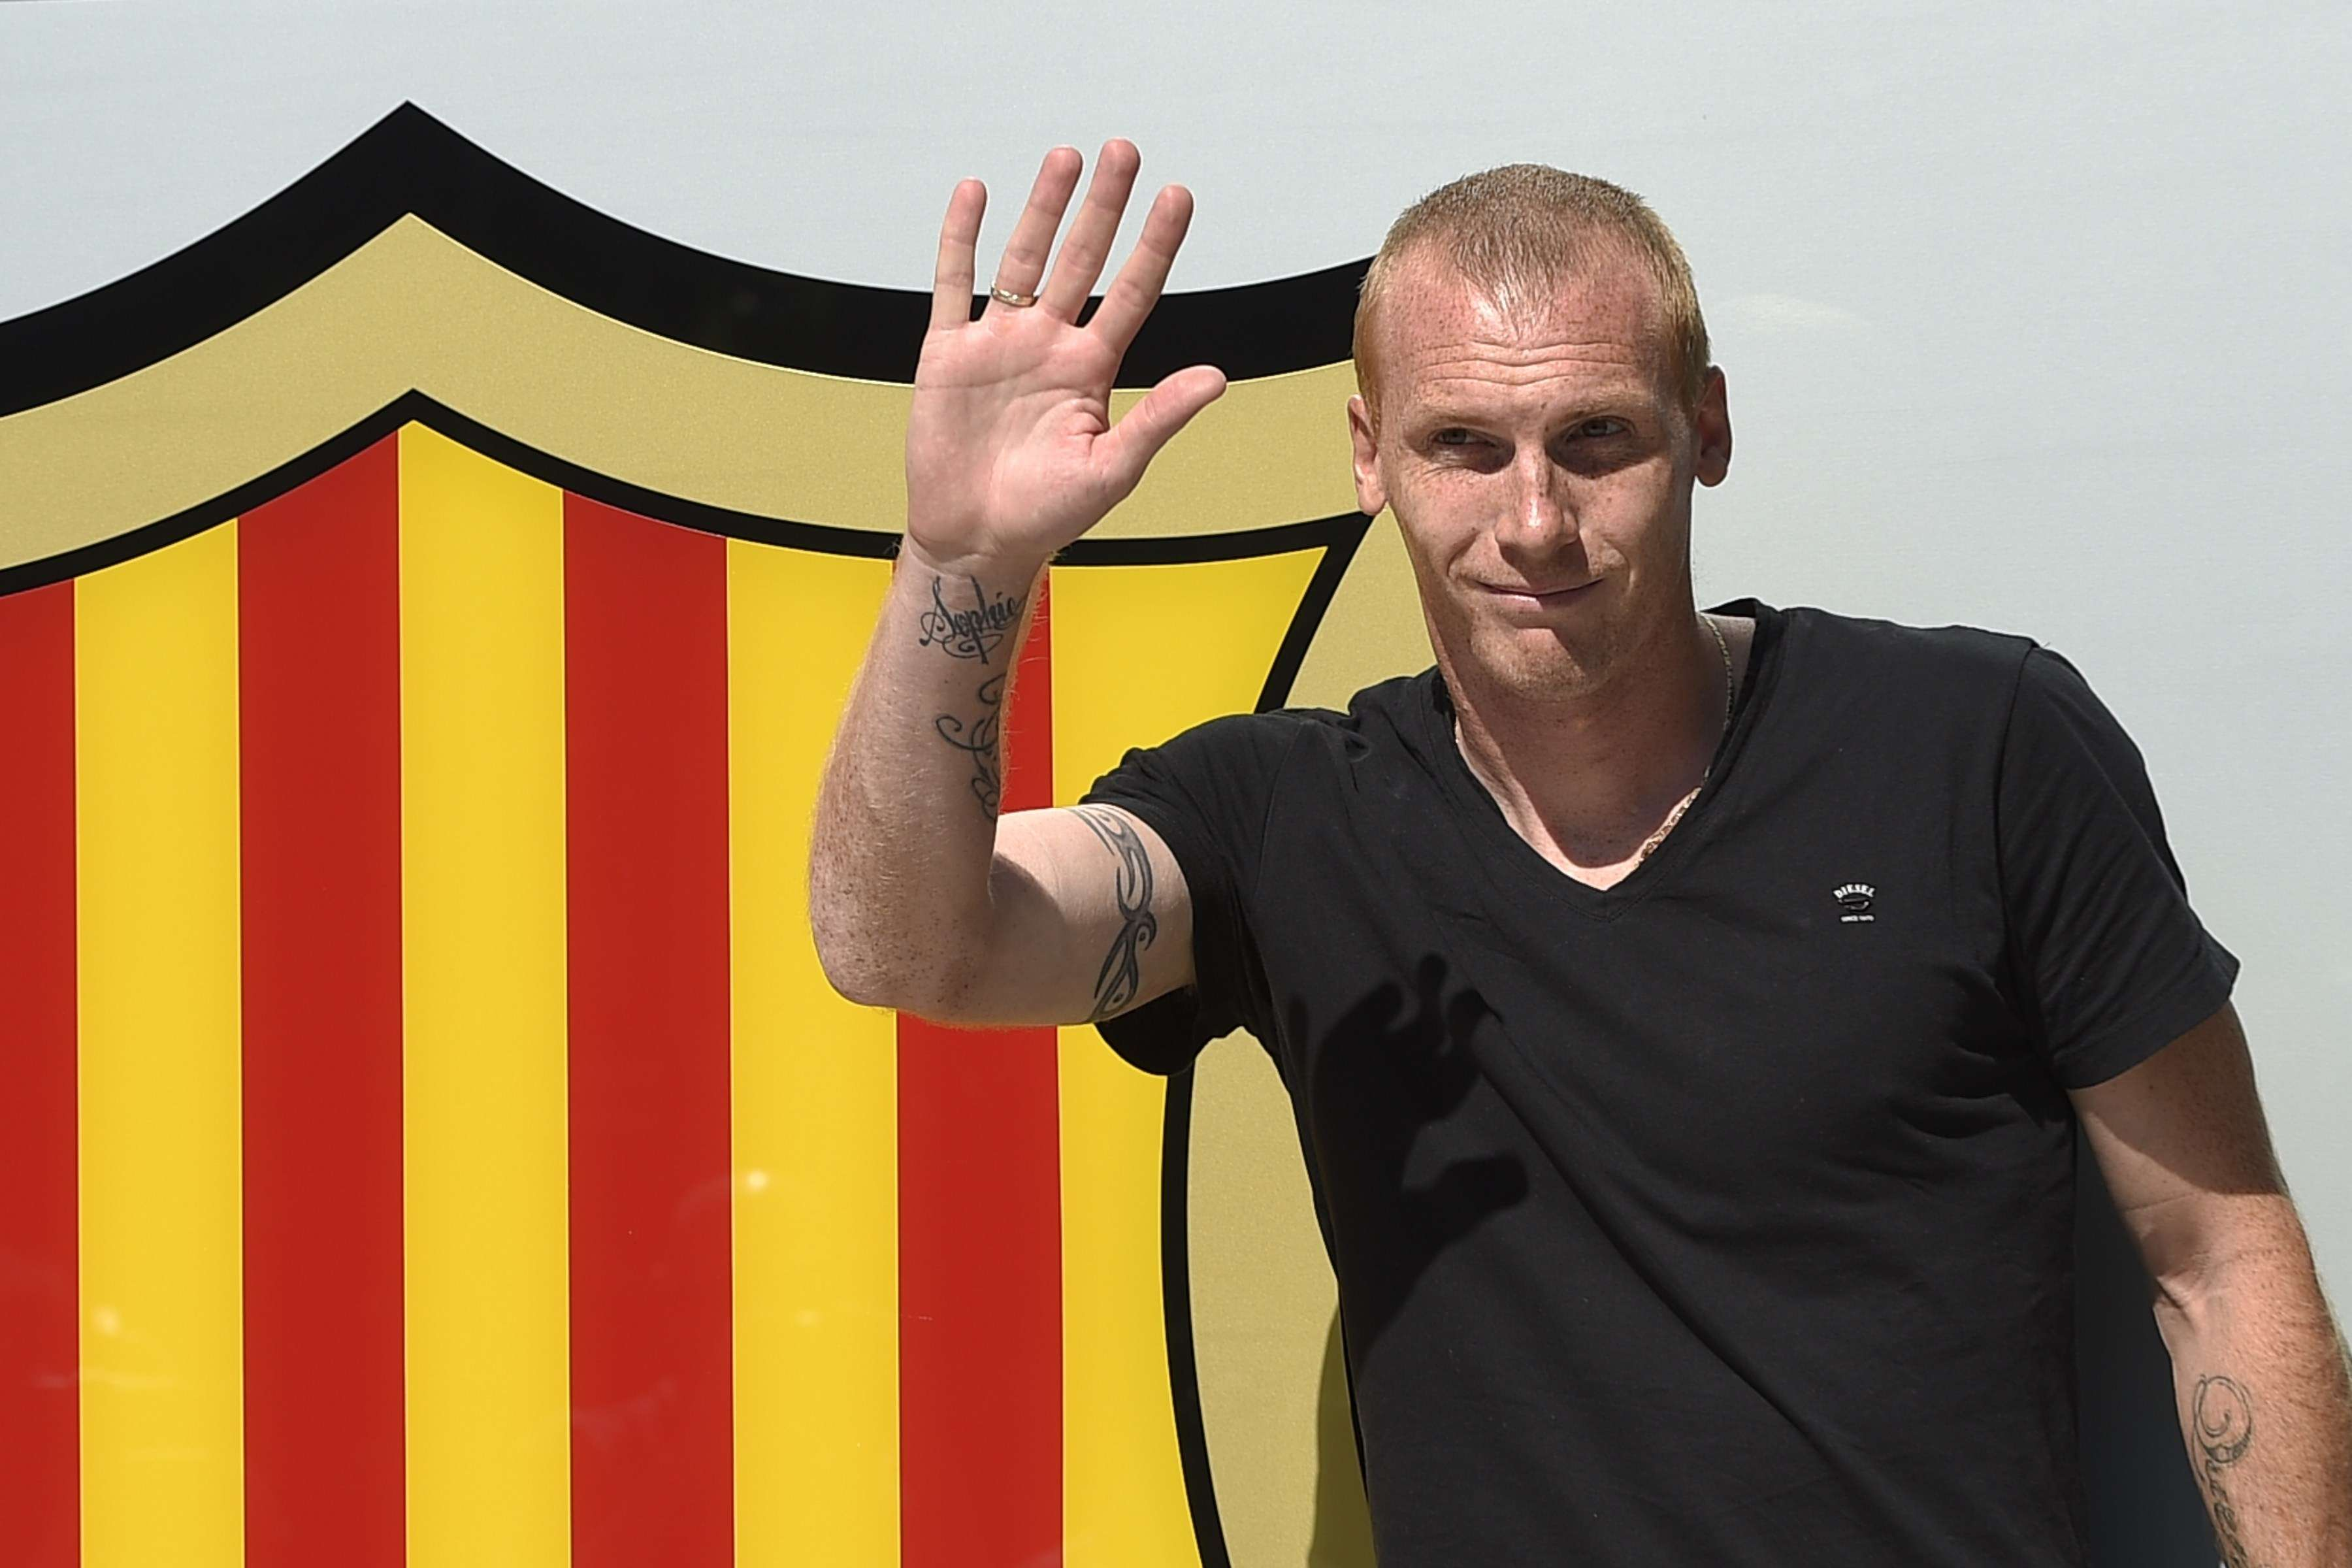 France defender Mathieu signs with Barcelona